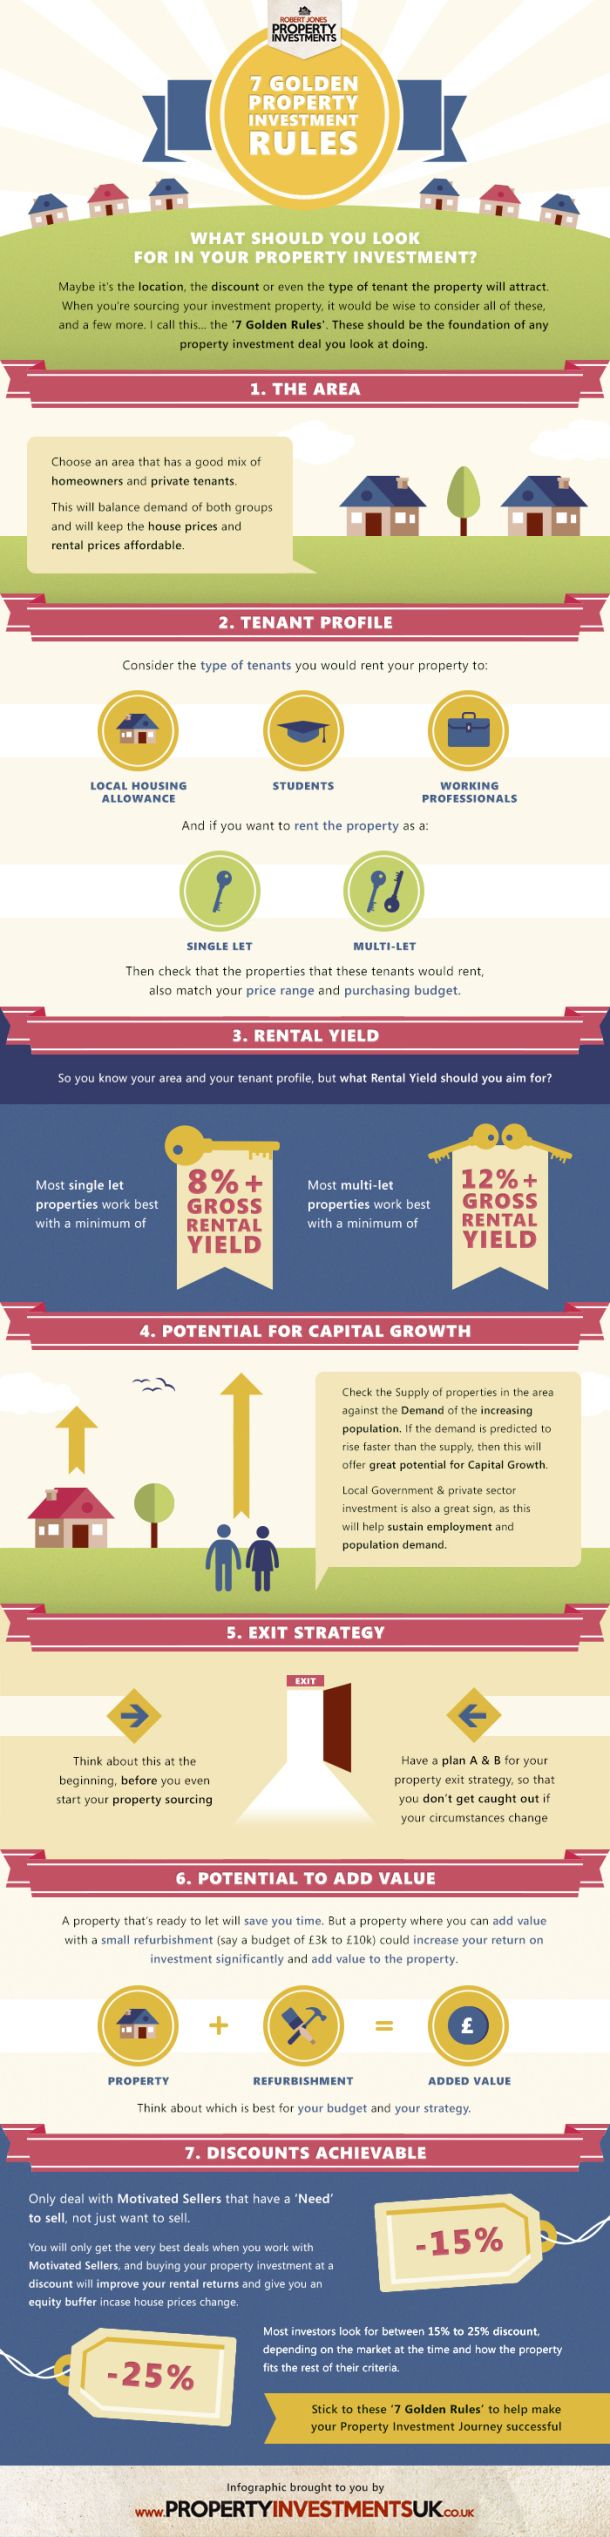 7 Golden Property Investment Rules[INFOGRAPHIC]